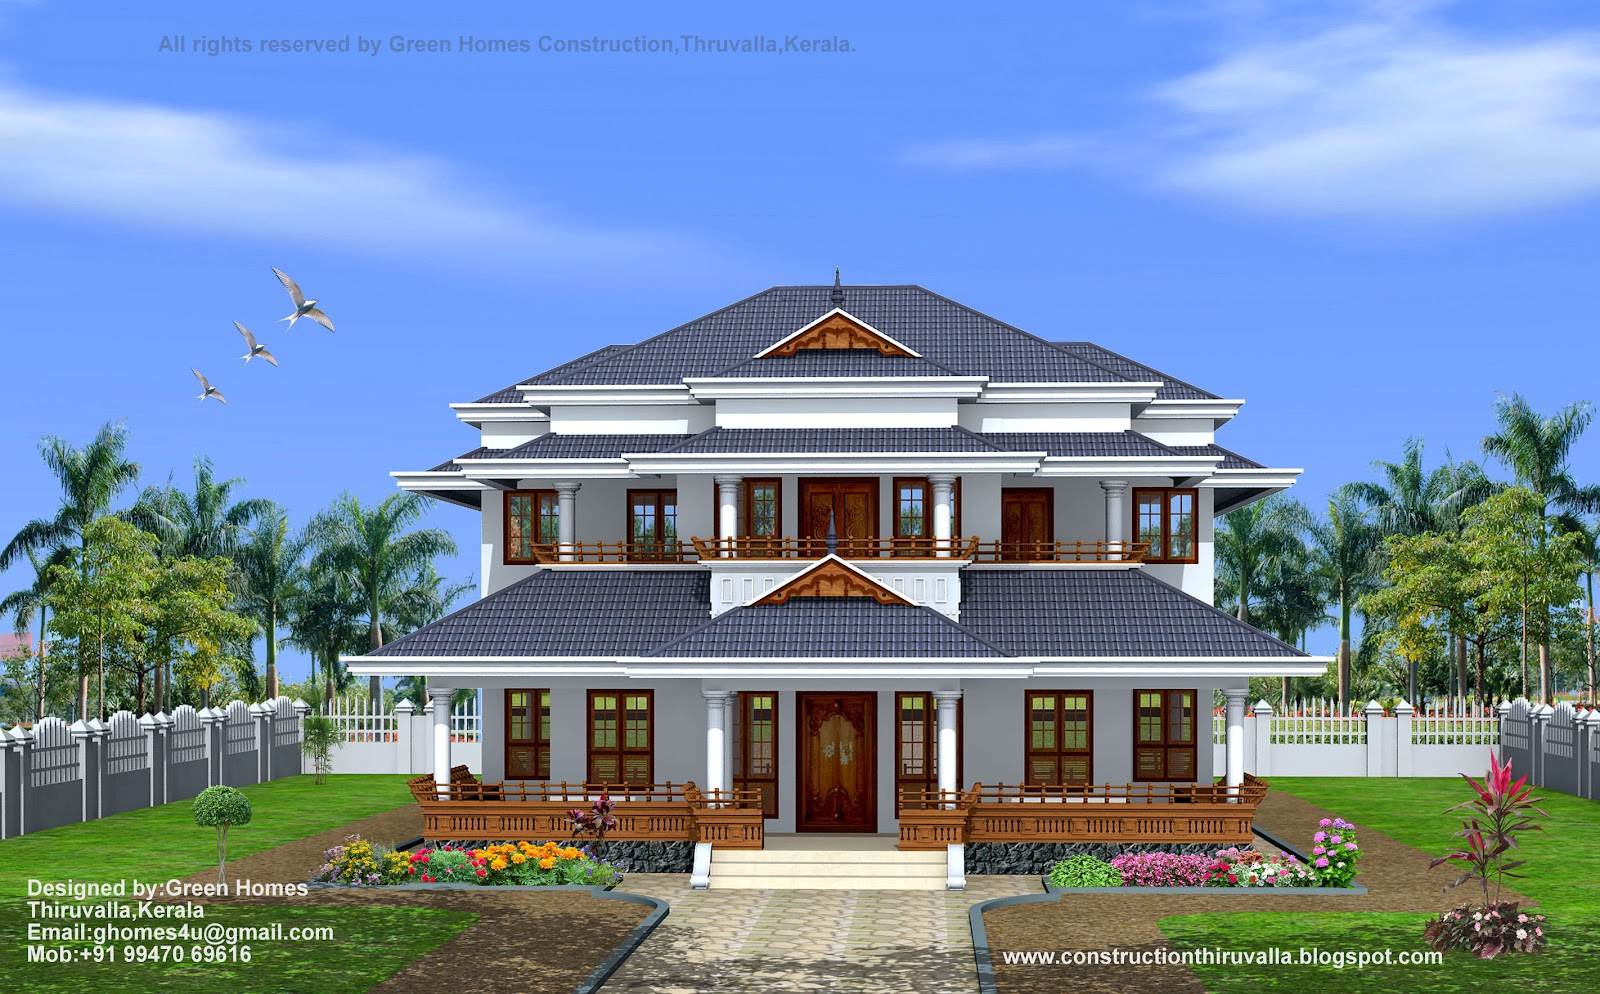 Green homes traditional style kerala home design 3450 sq feet for Conventional homes